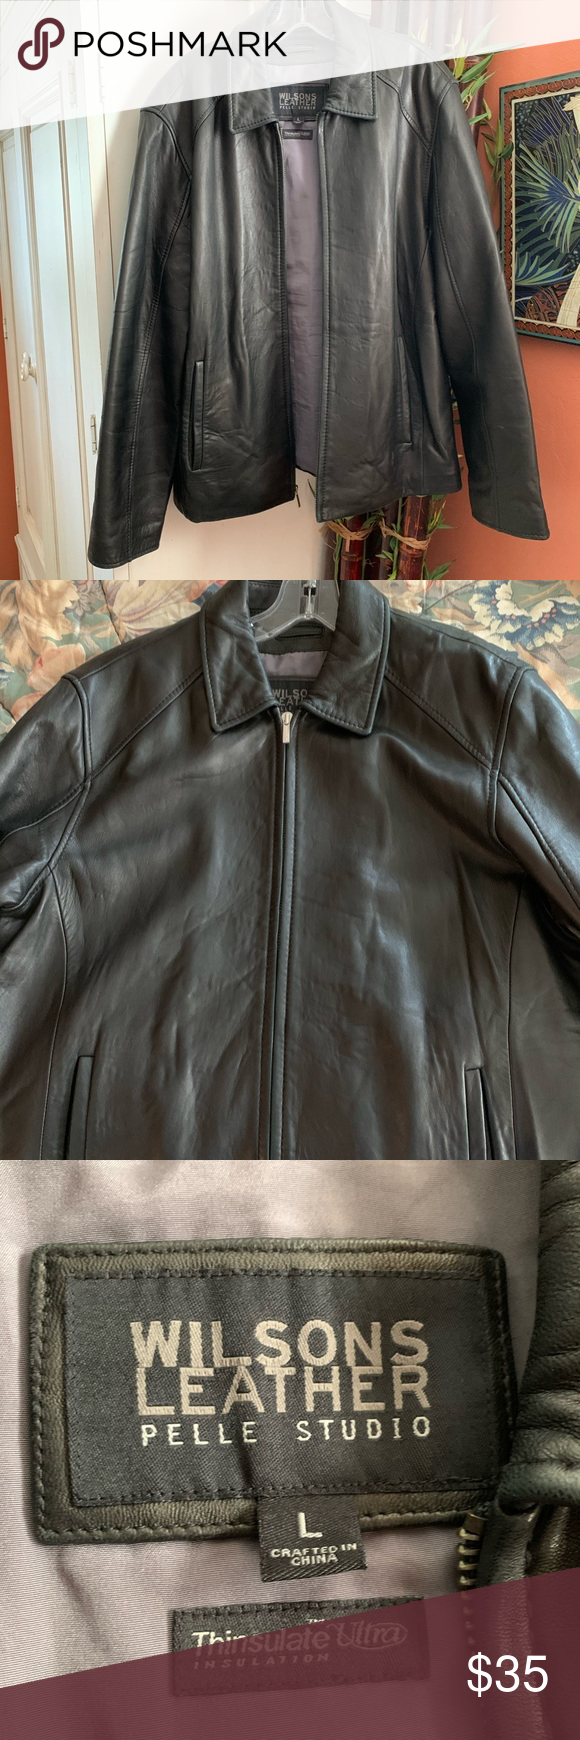 Wilsons leather Pelle studio men's leather jacket